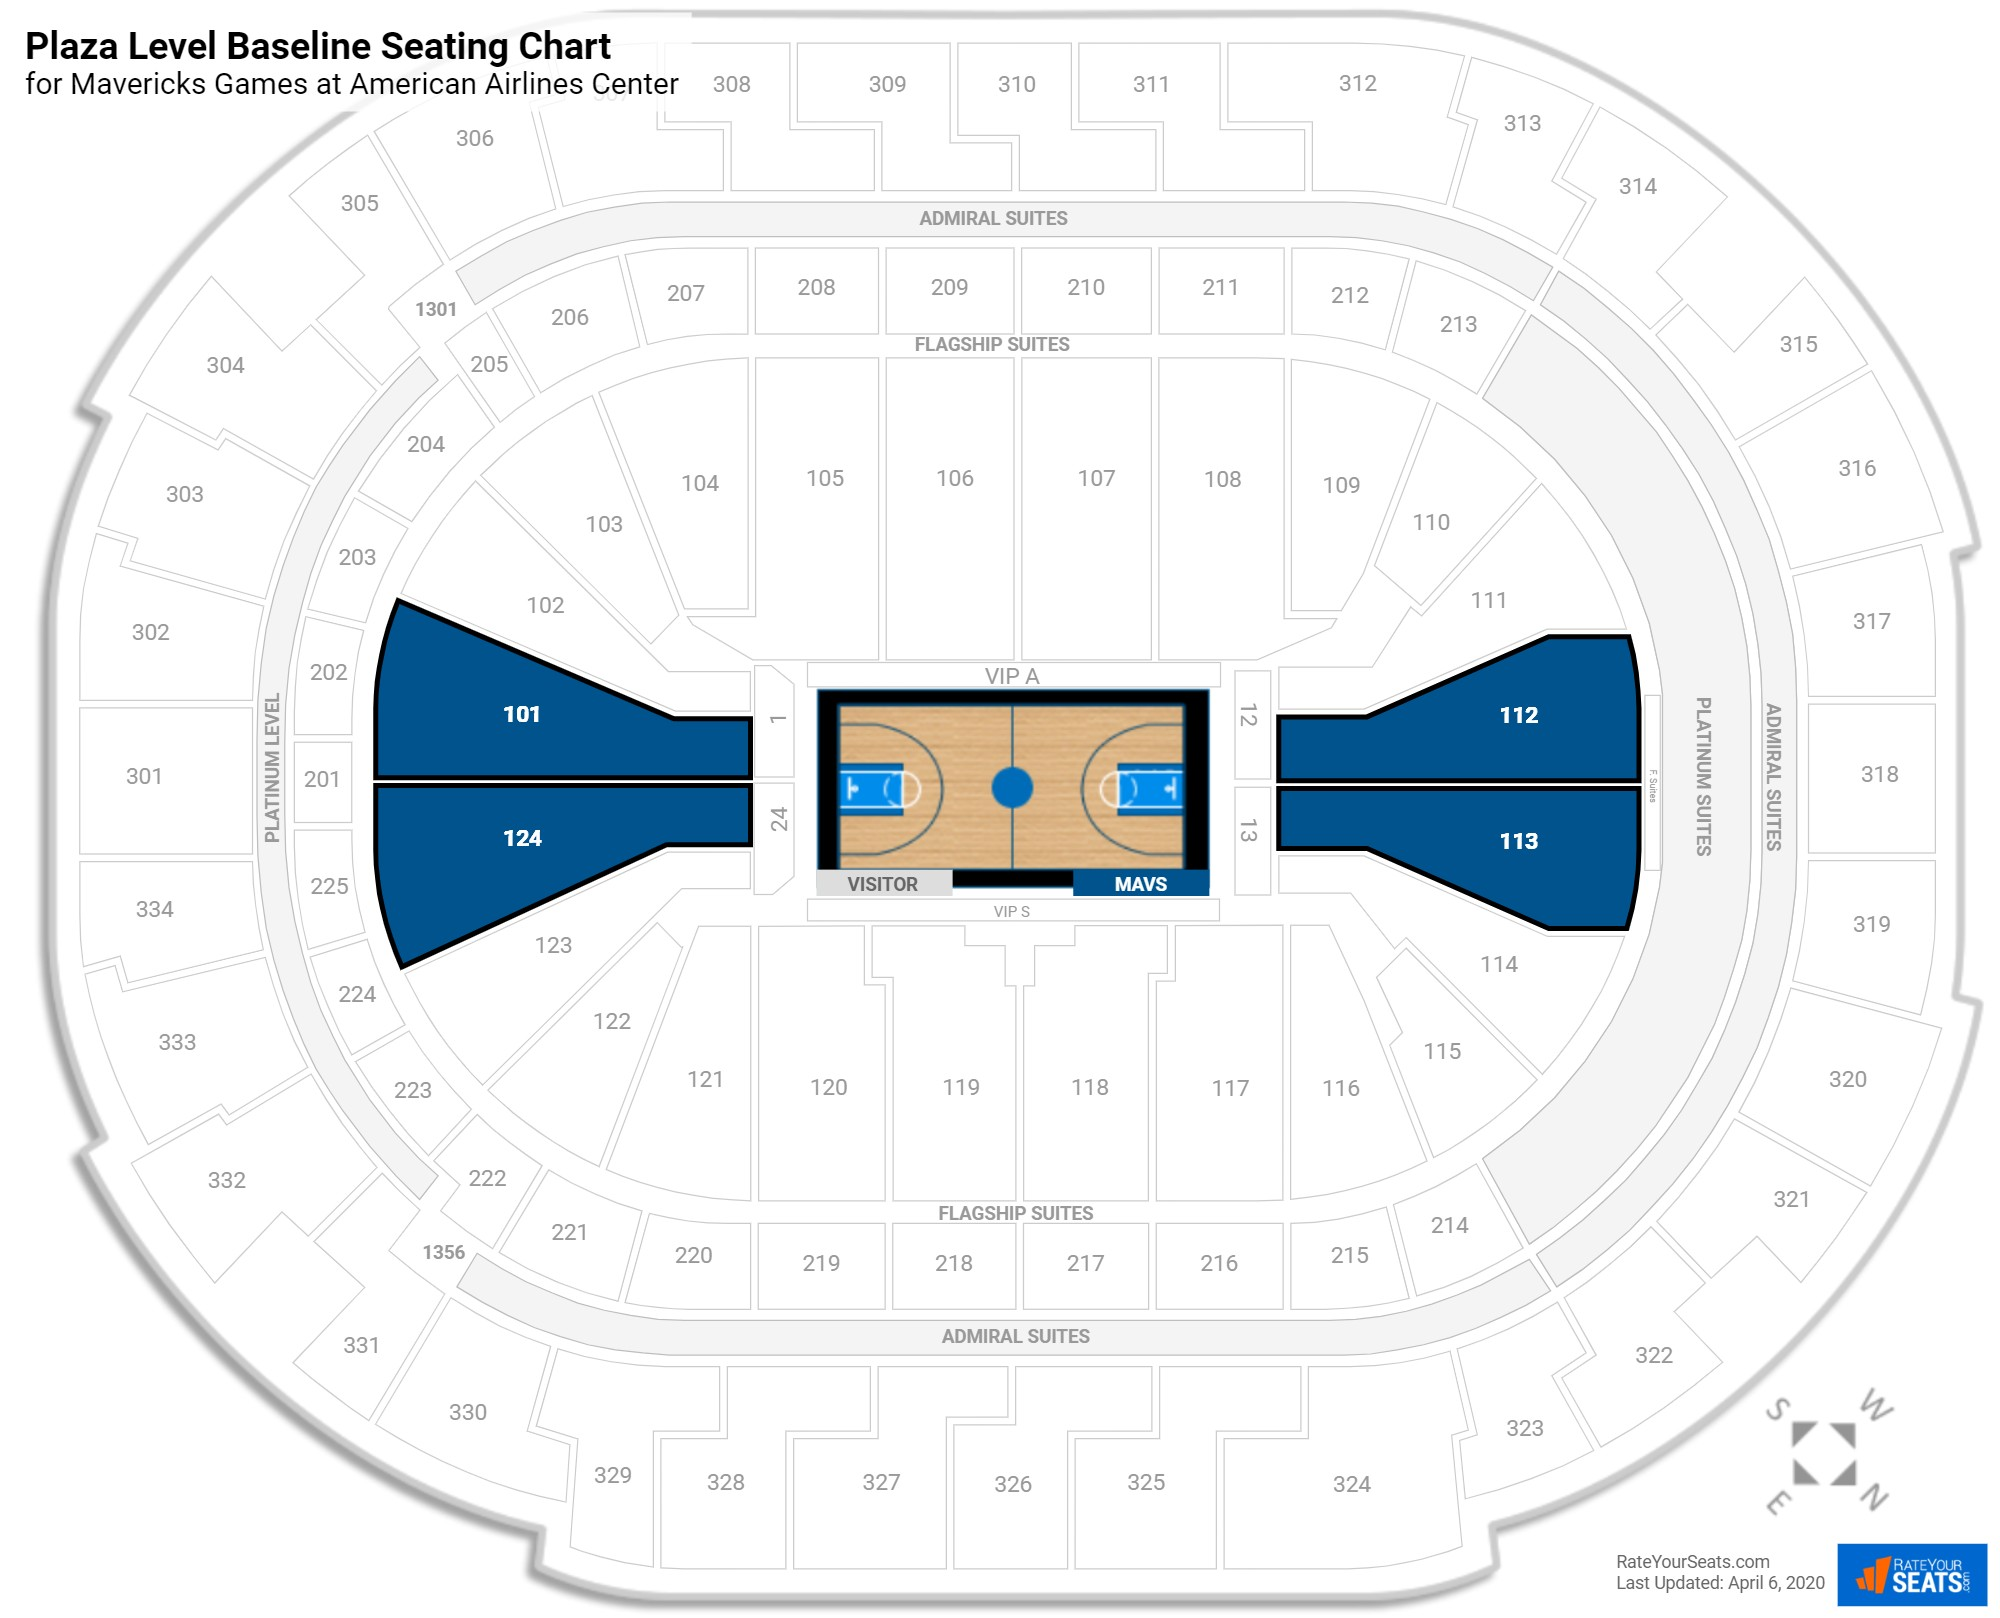 American Airlines Center Plaza Level Baseline seating chart